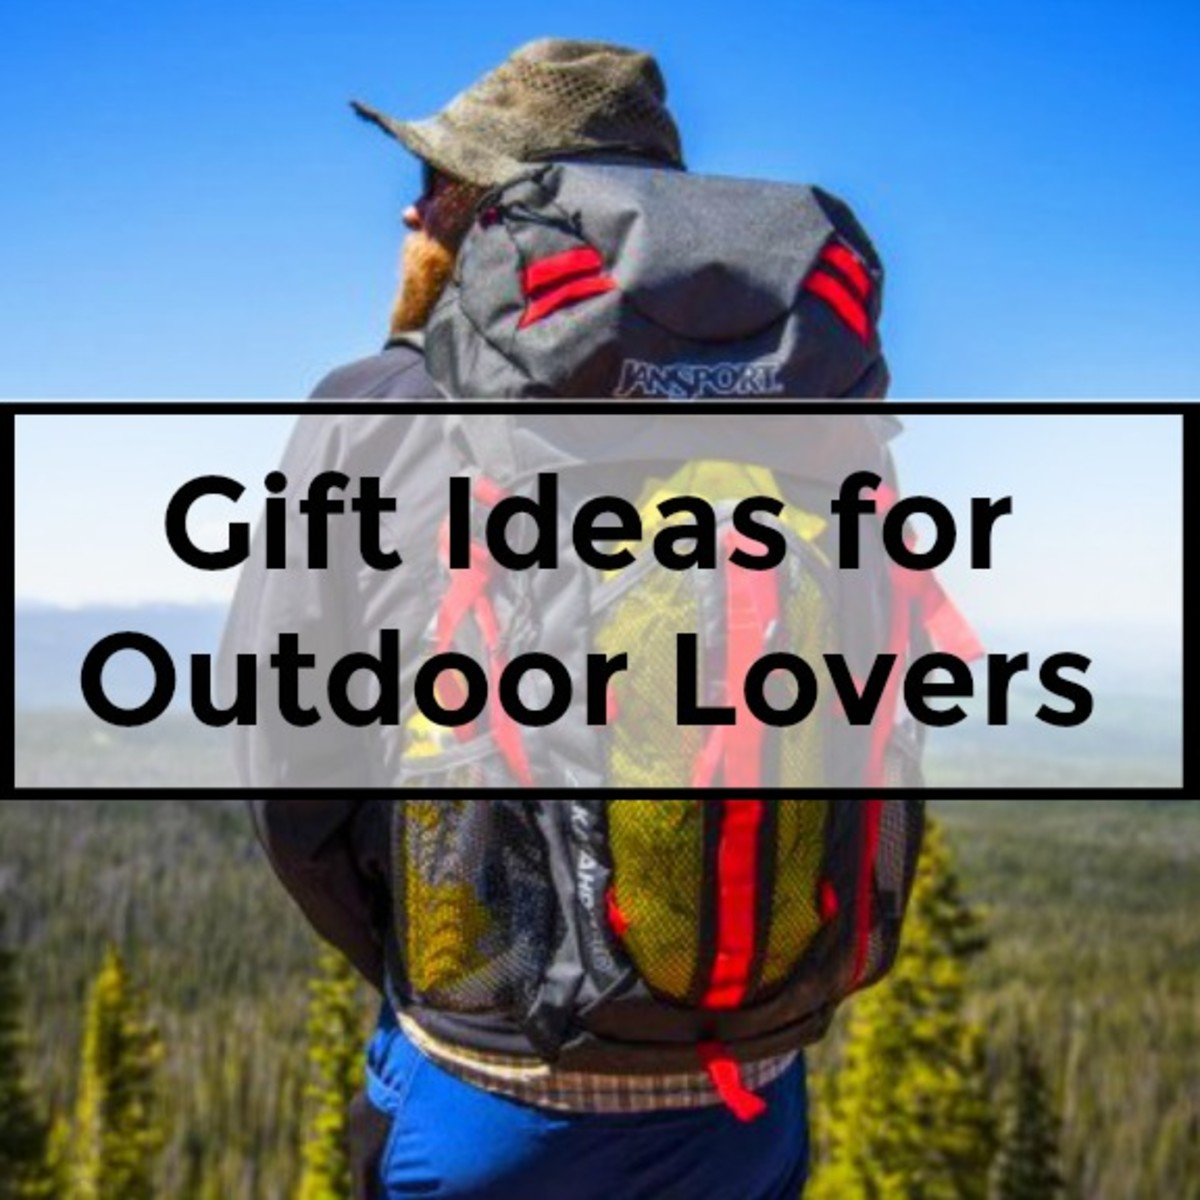 Gifts for outdoor enthusiastic and stocking stuffer ideas.